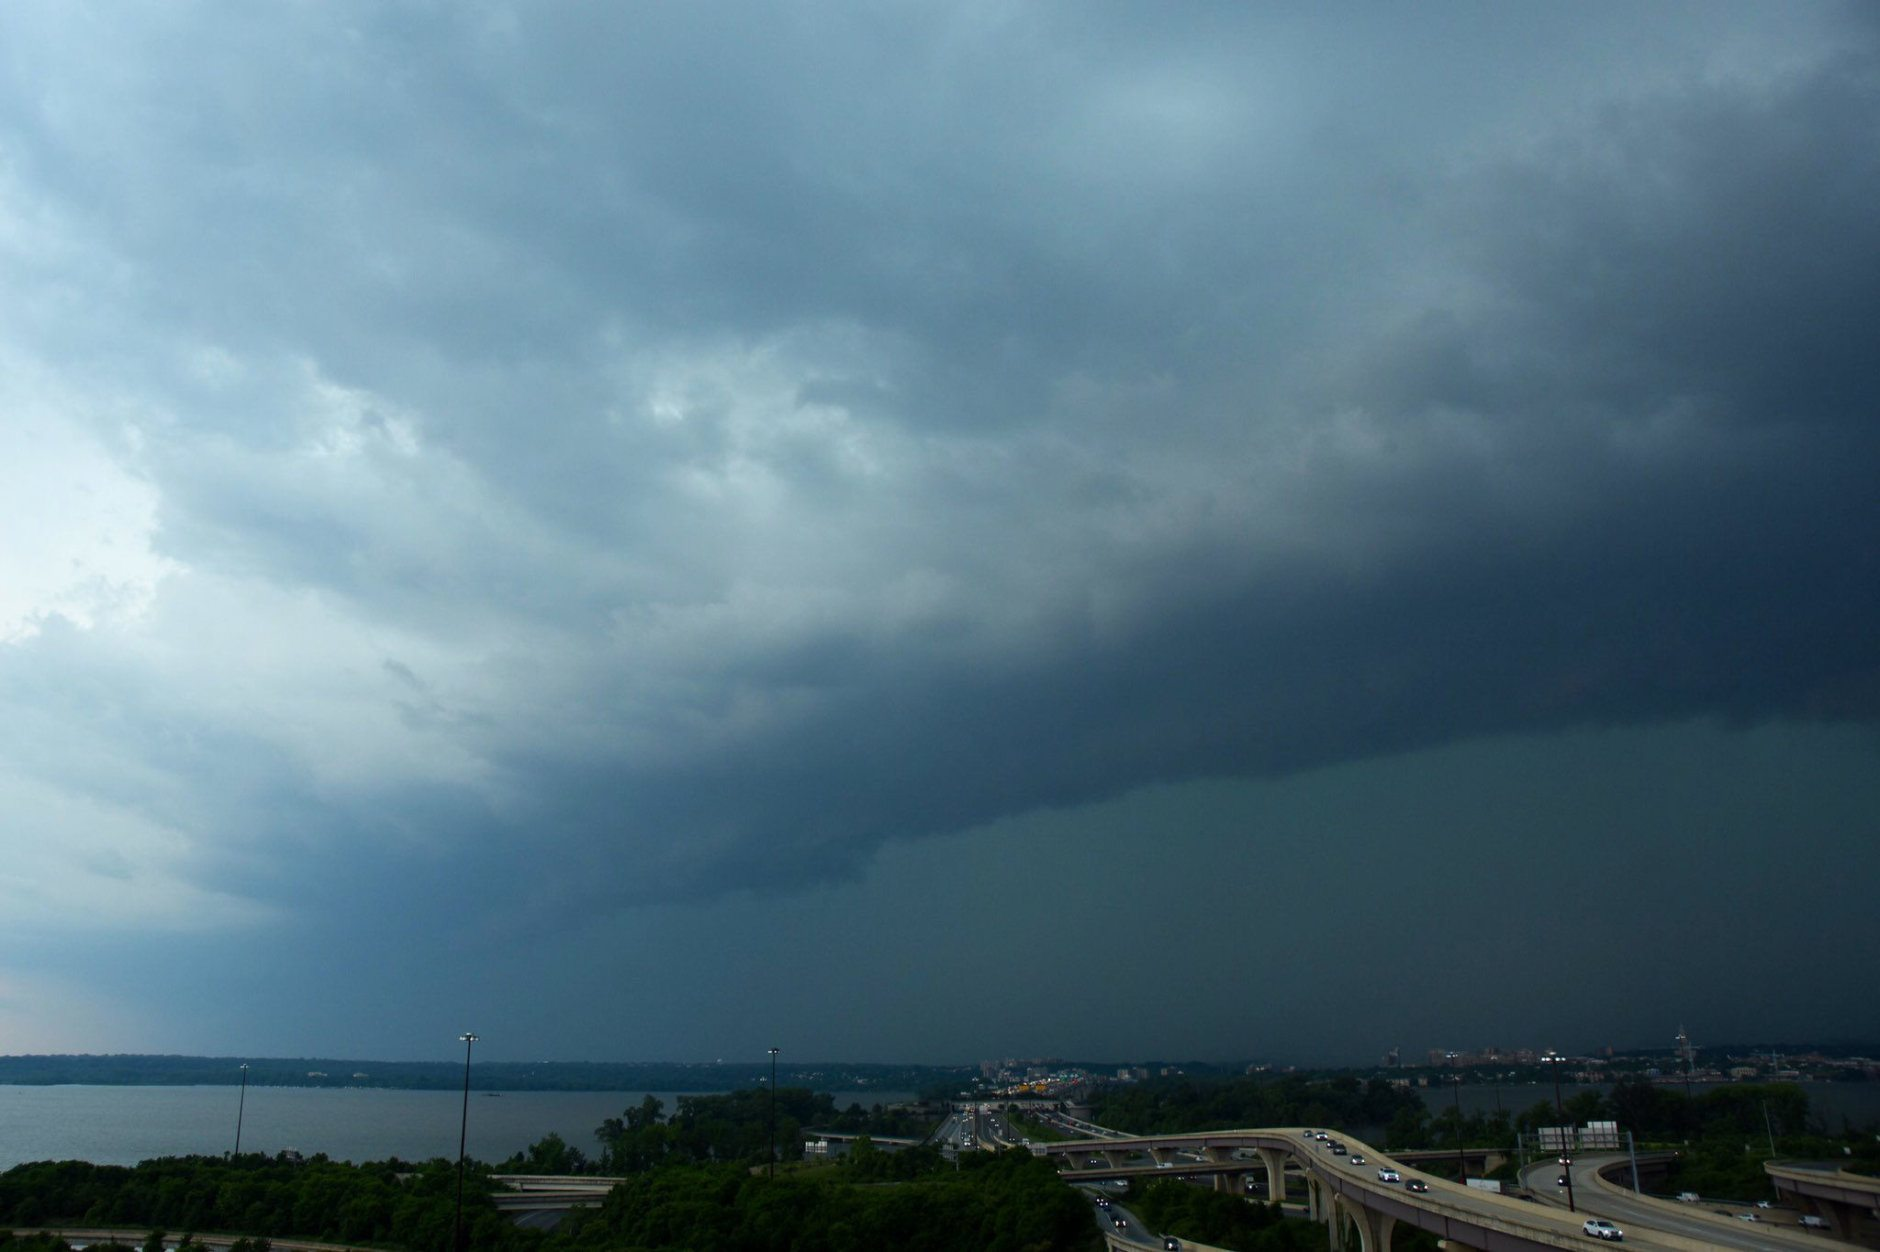 A view of Thursday afternoon's storm from WTOP's Dave Dildine. (WTOP/Dave Dildine)